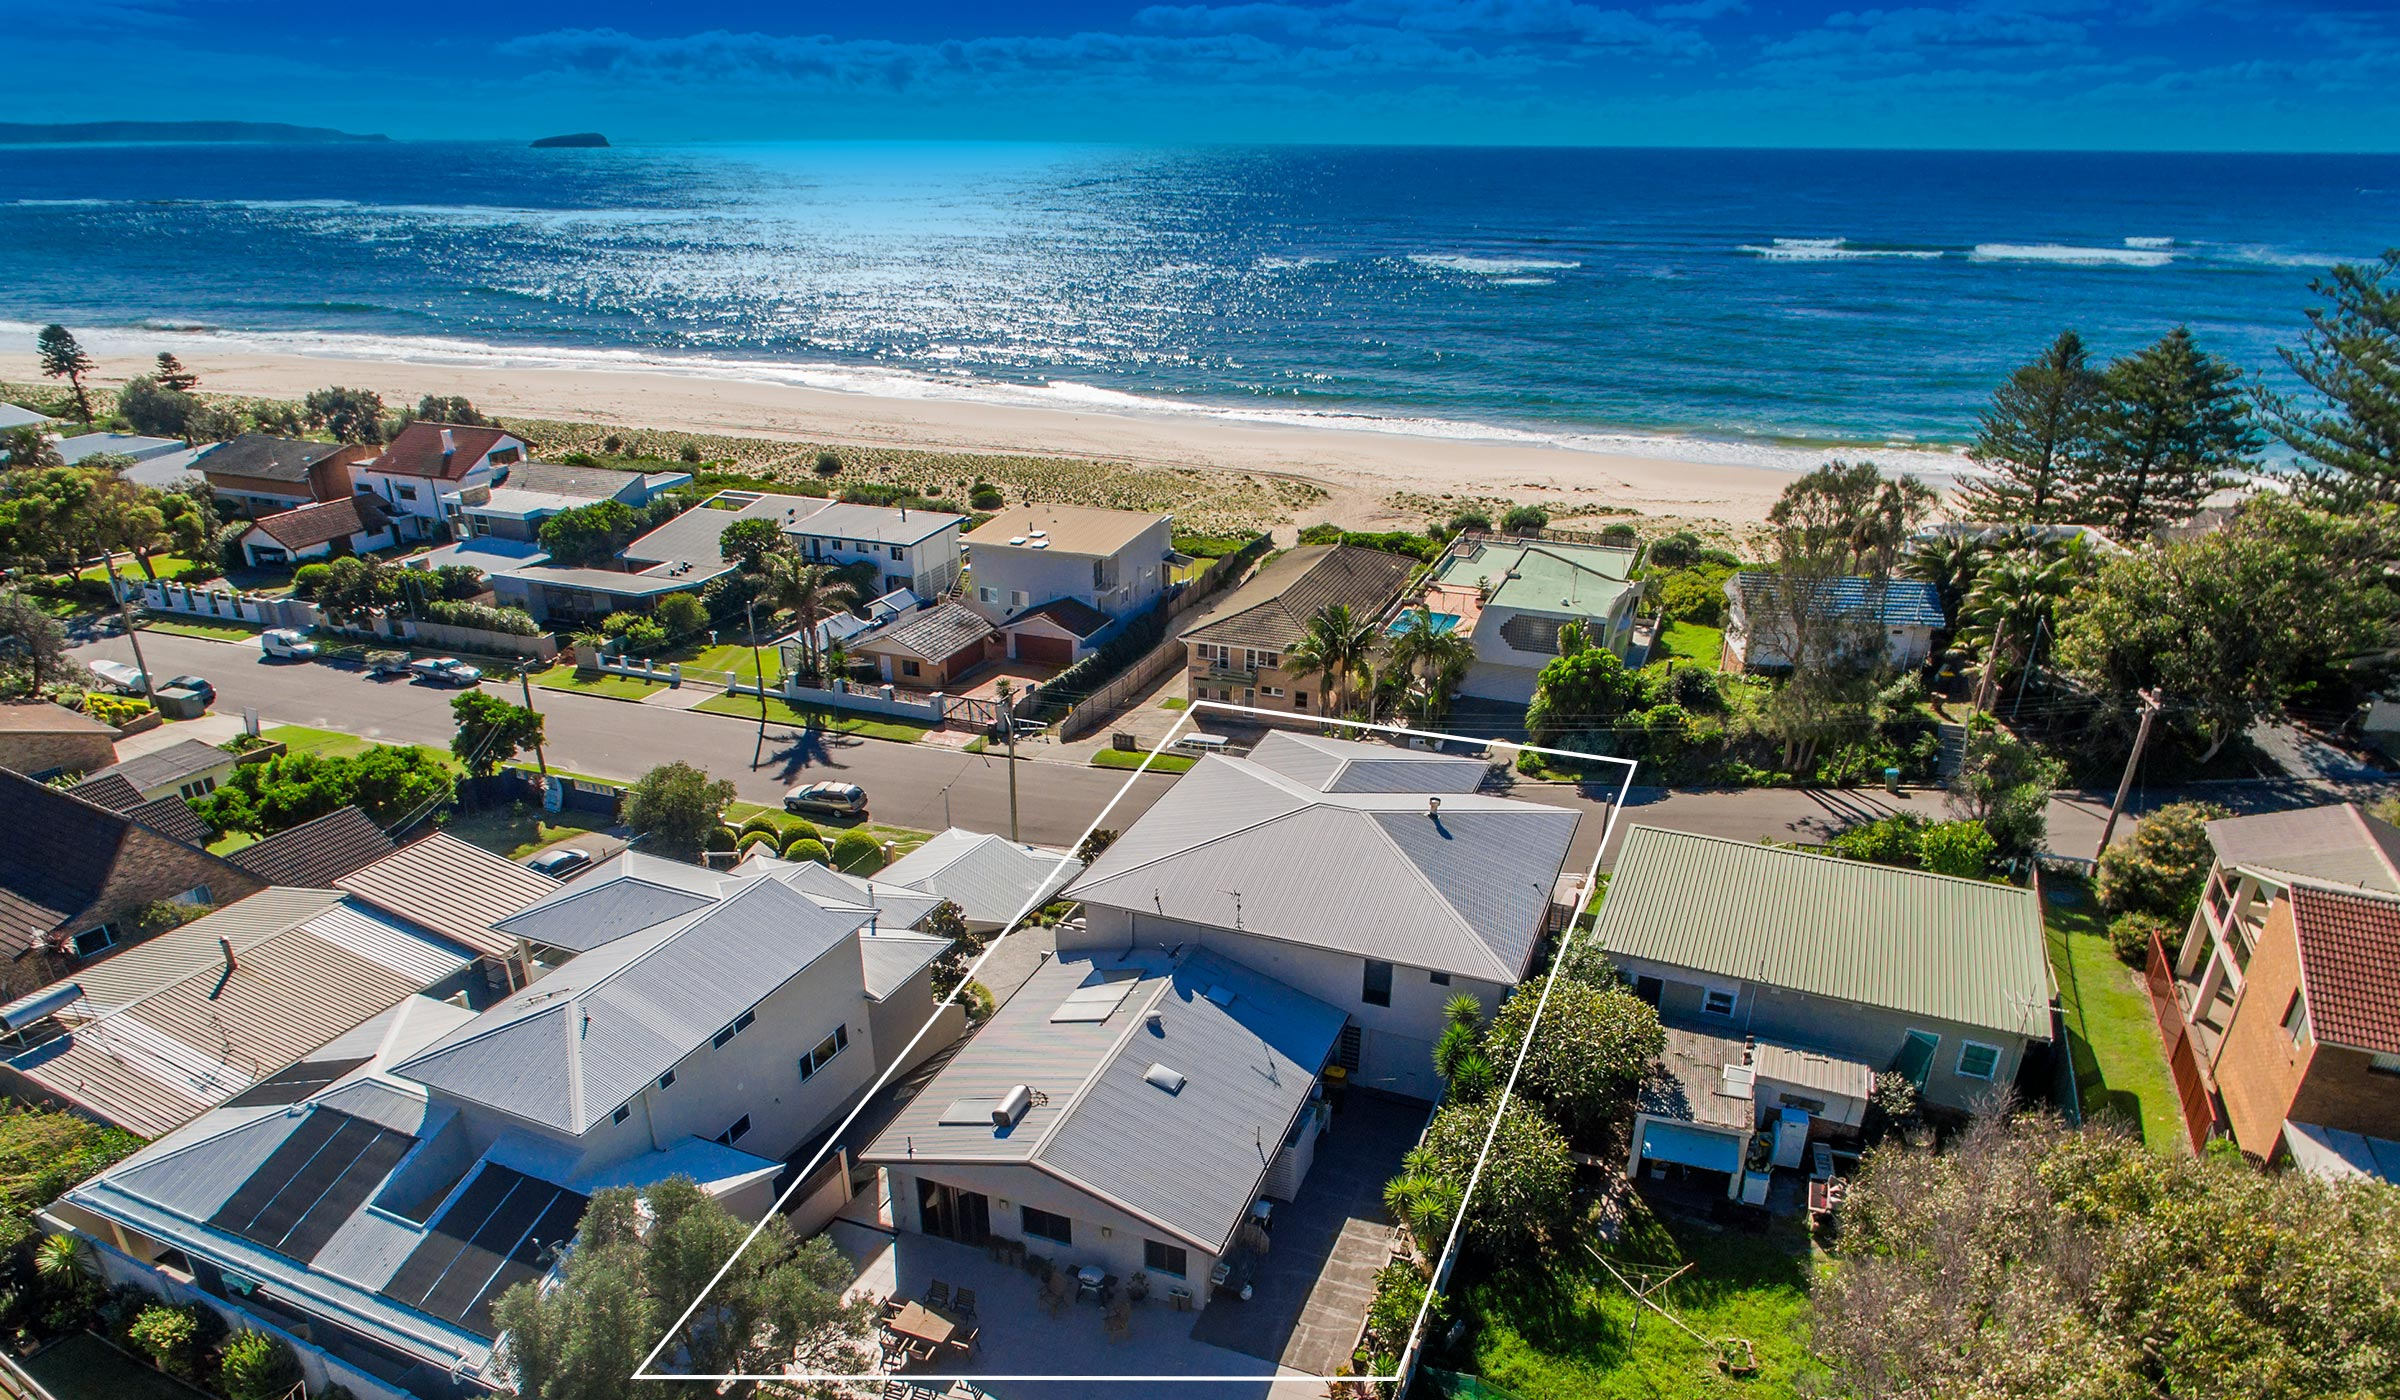 Contact us at Hargraves Beach House - holiday accommodation